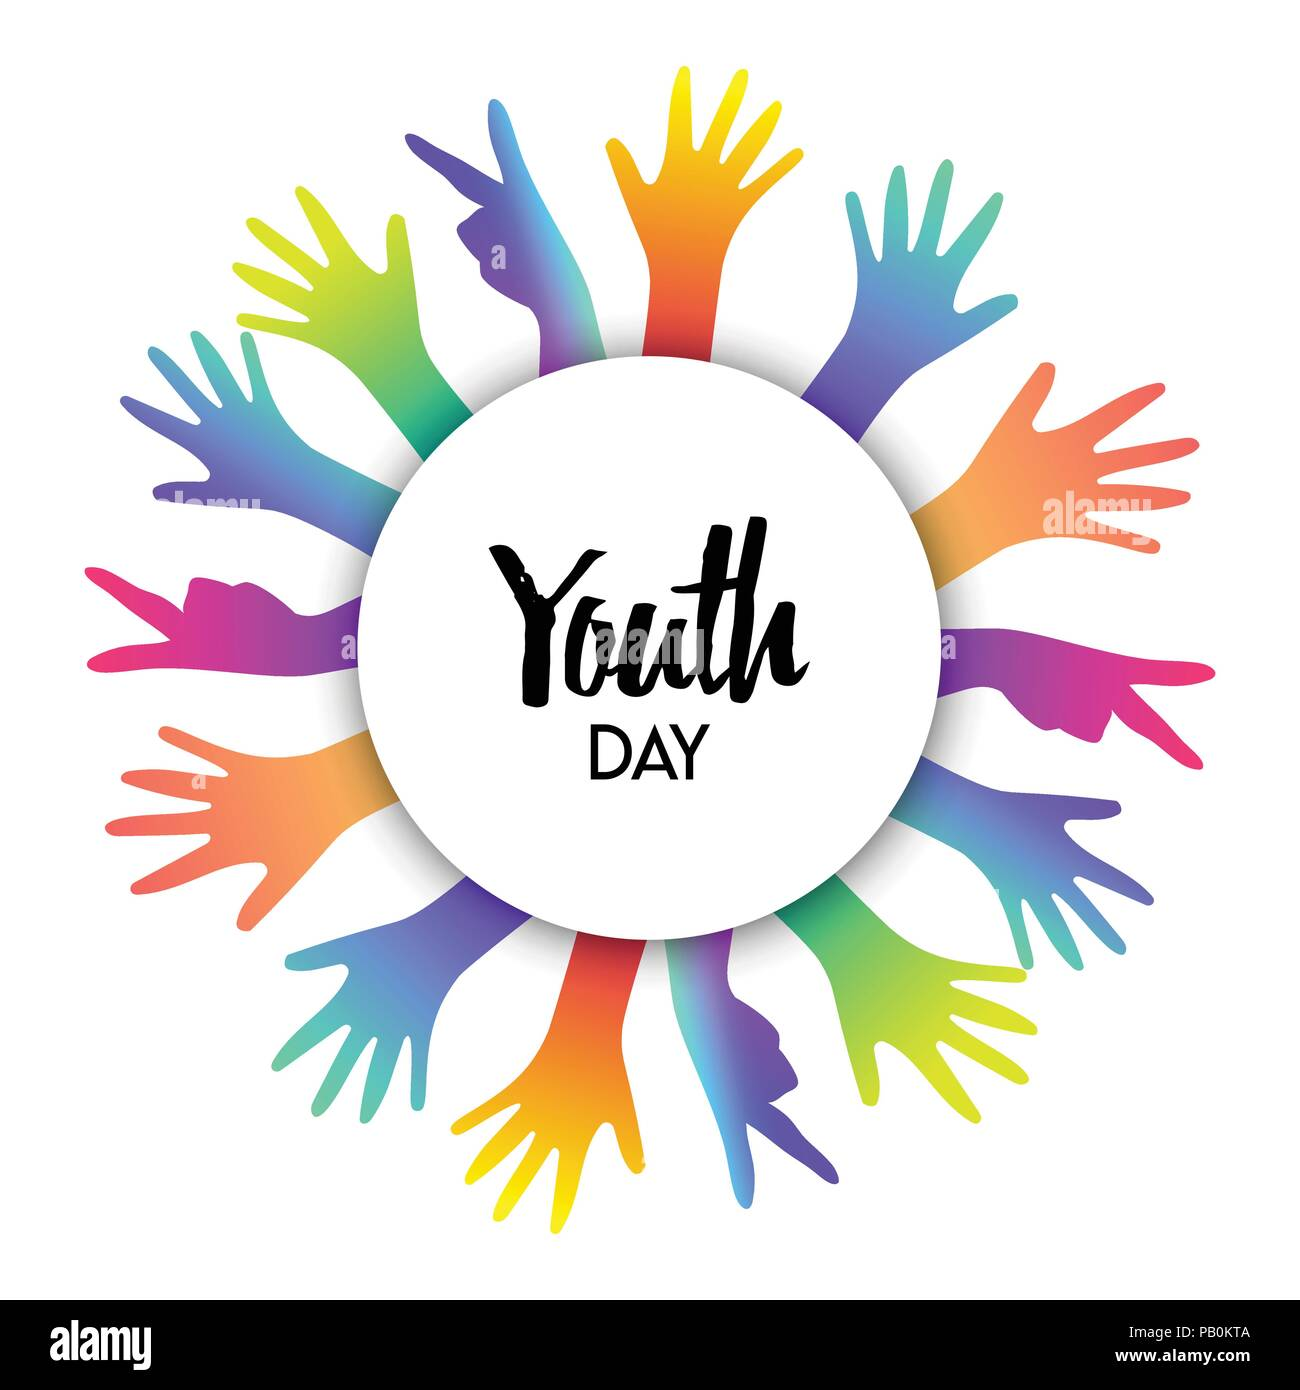 Happy Youth Day Greeting Card Of Diverse Color Hands And Text Quote Colorful Young People Group Concept Eps10 Vector